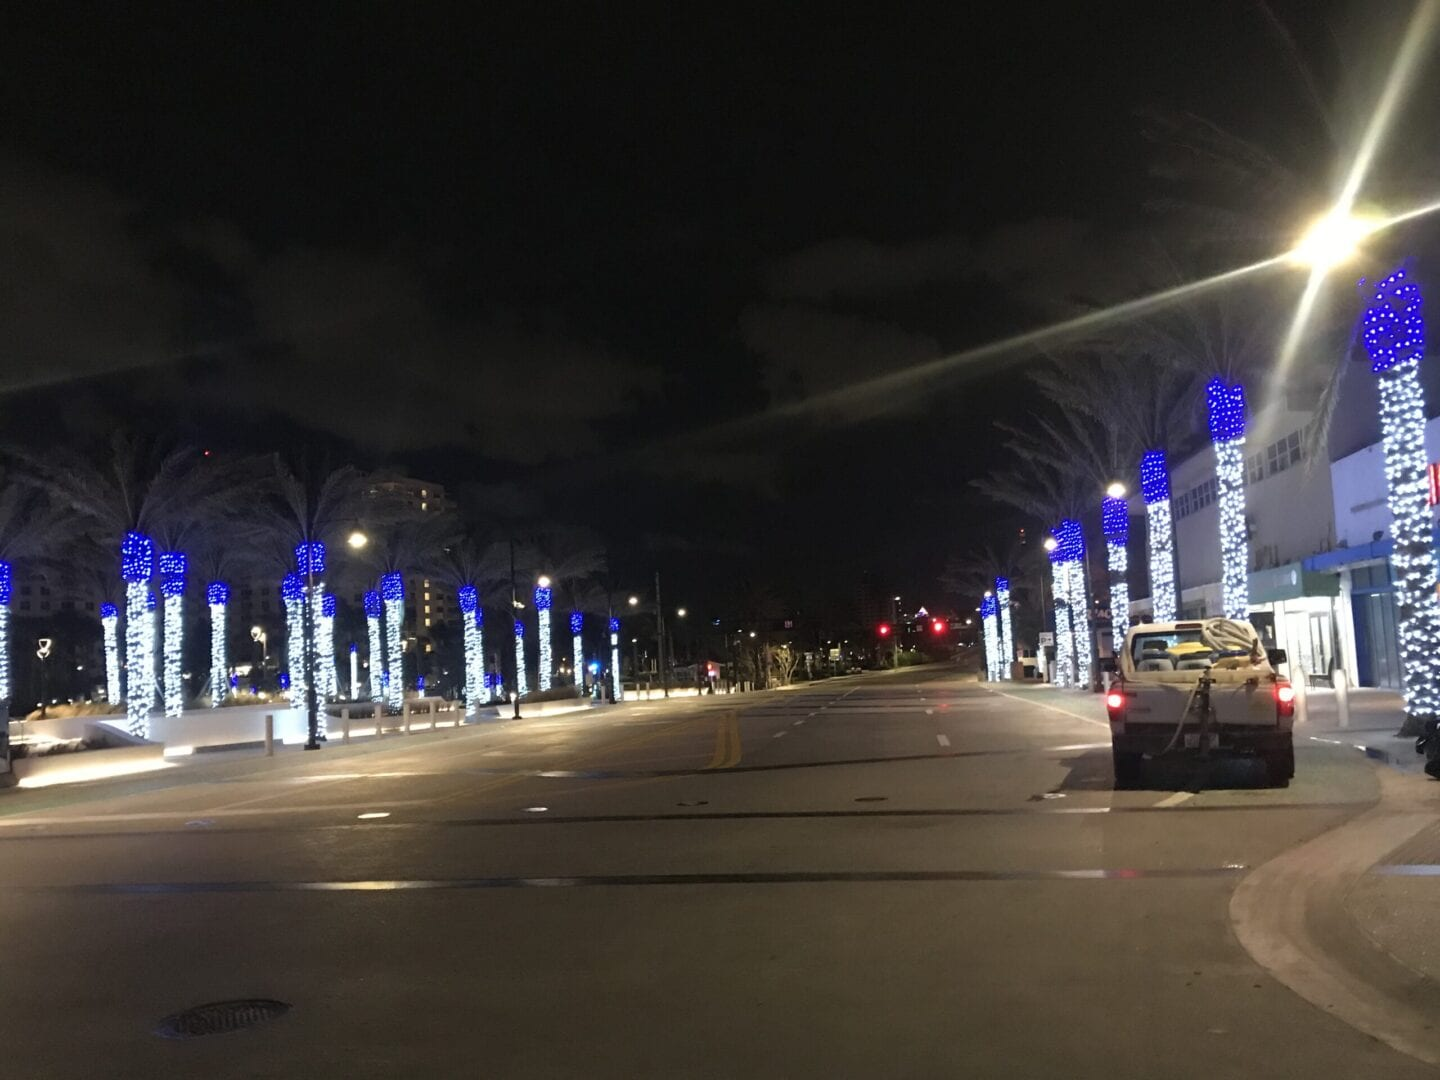 Rows of palm trees with lights on the sides of the road